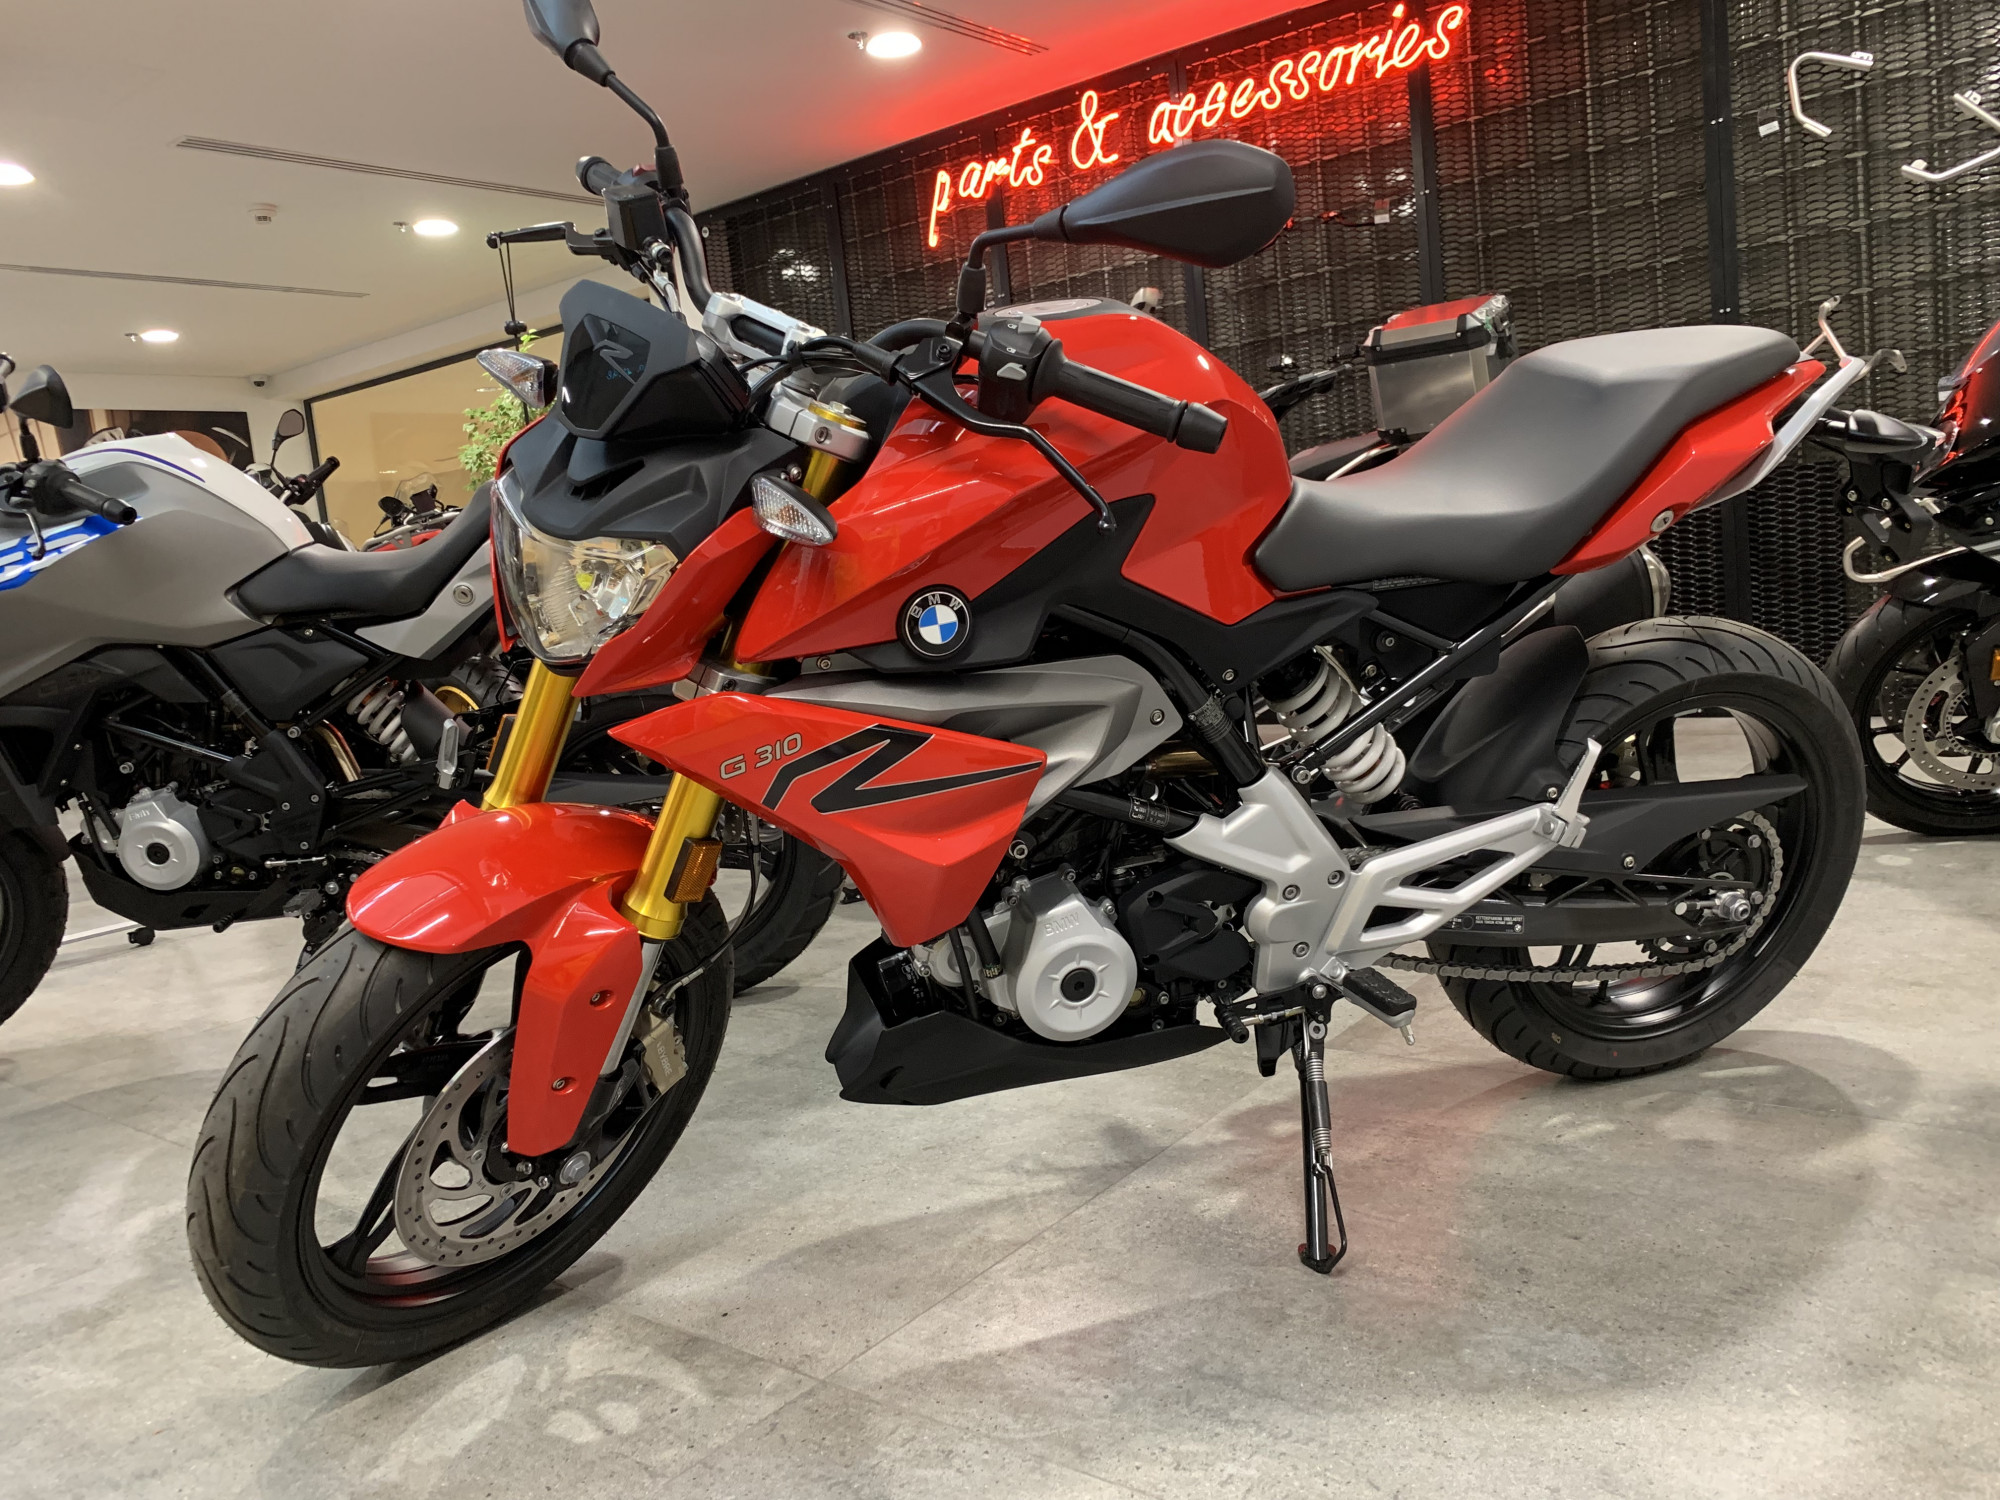 G 310 R Racing Red